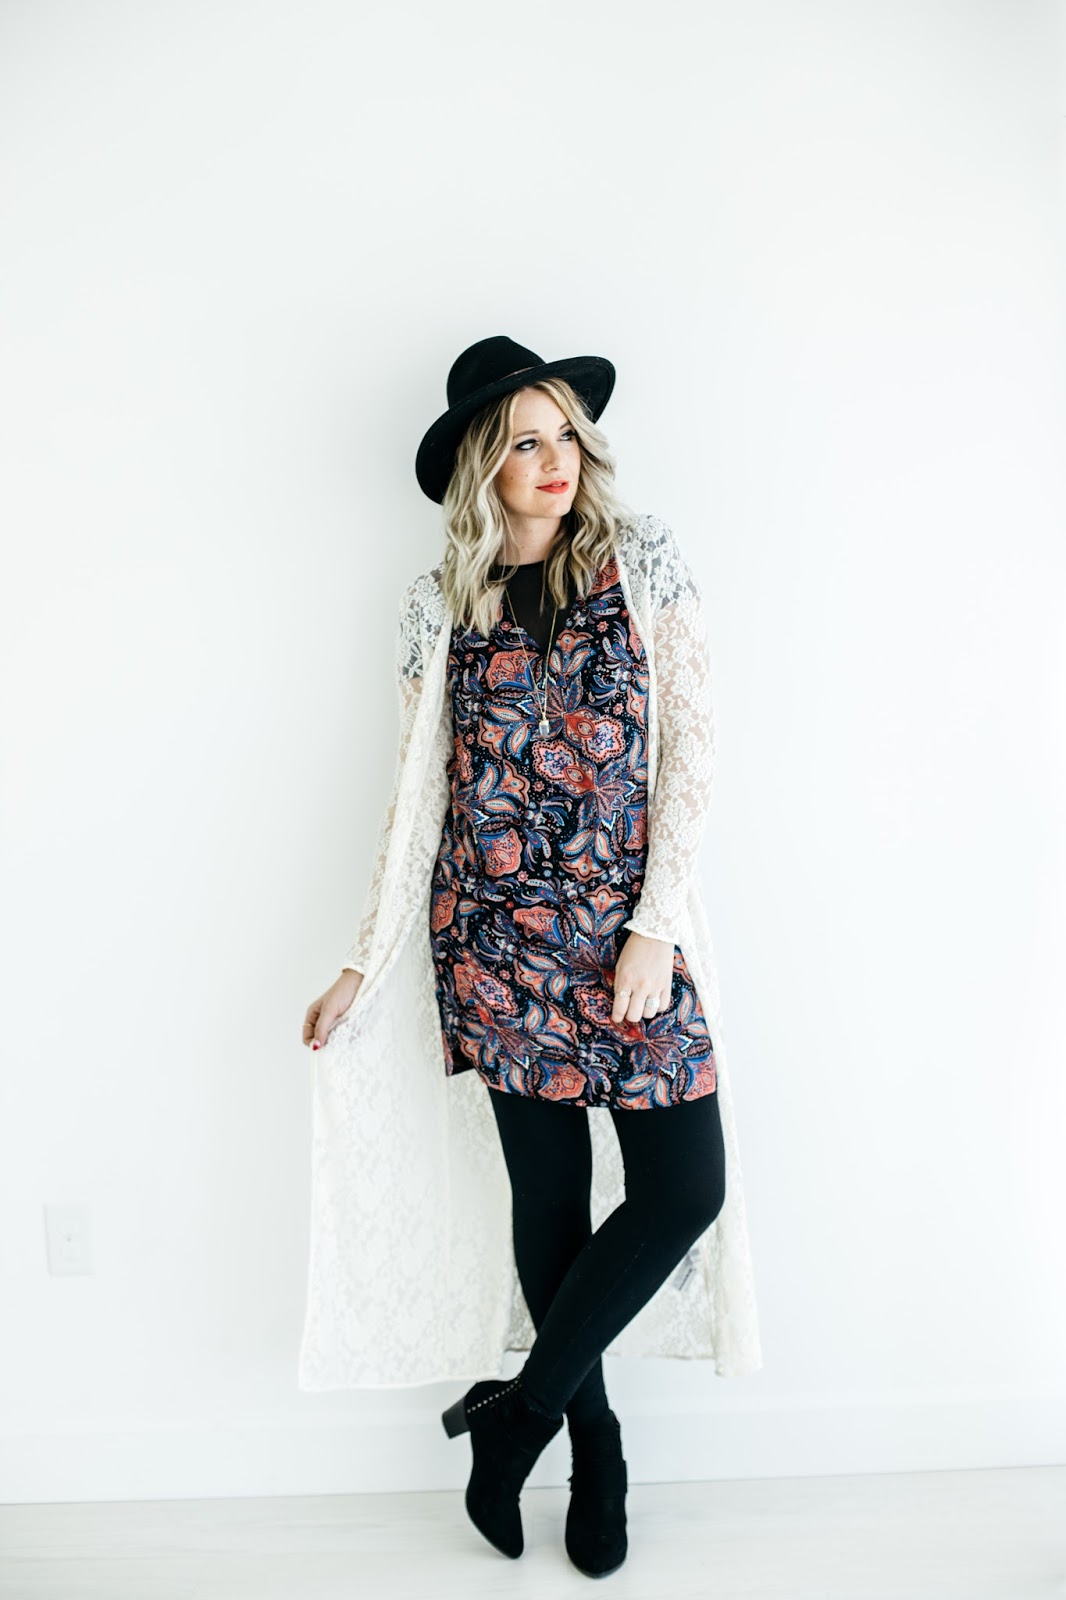 thredUP, Blanqi Girls, Utah Fashion Blogger